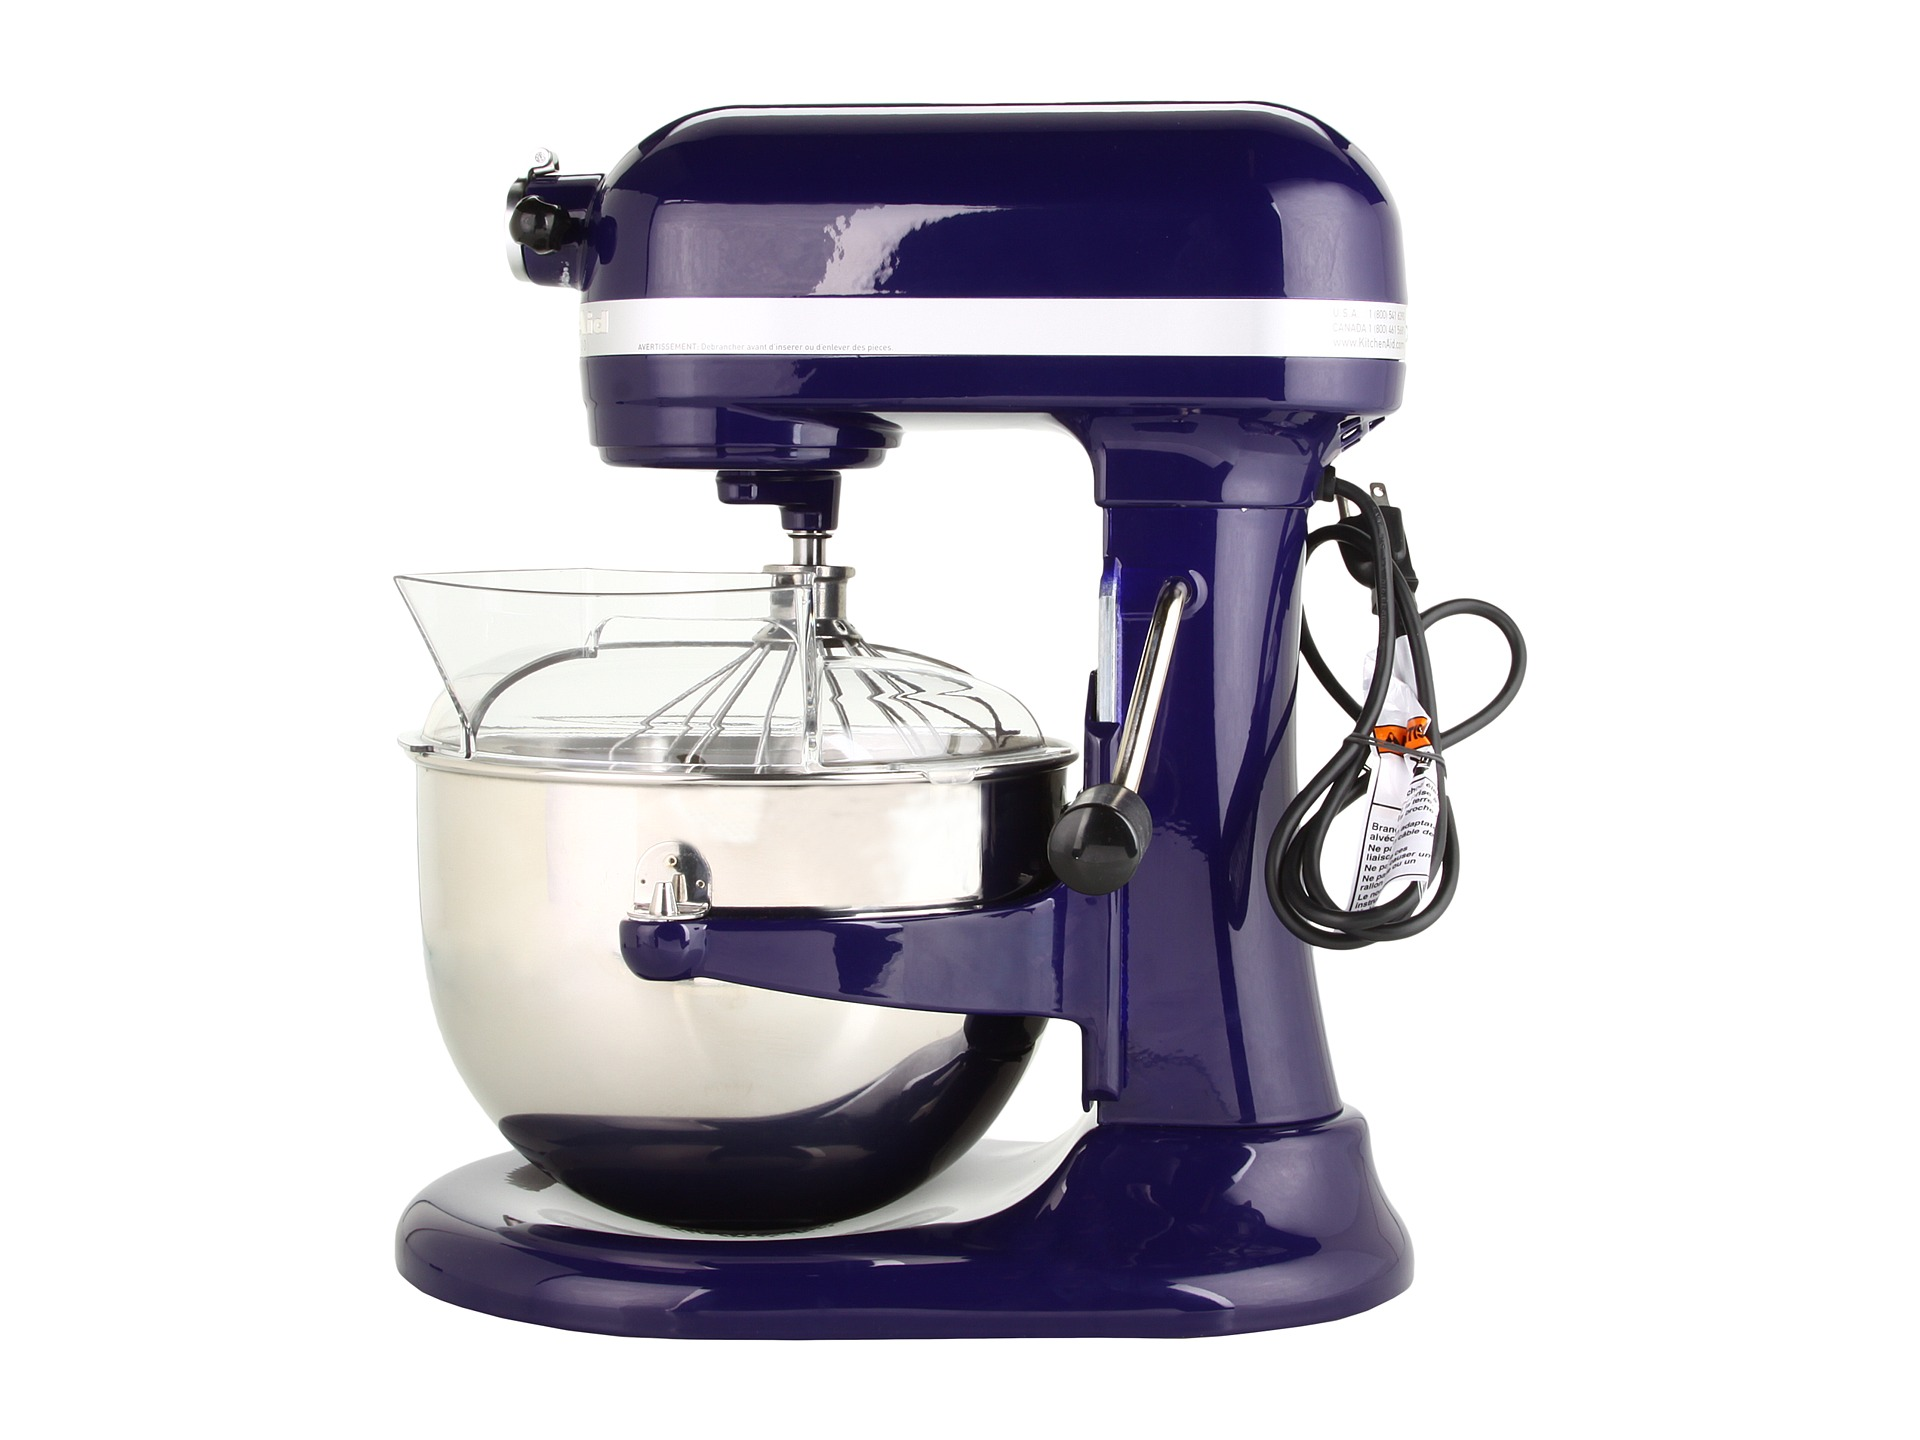 New Kitchenaid Pro 600 Cobalt Blue Stand Mixer 6quart